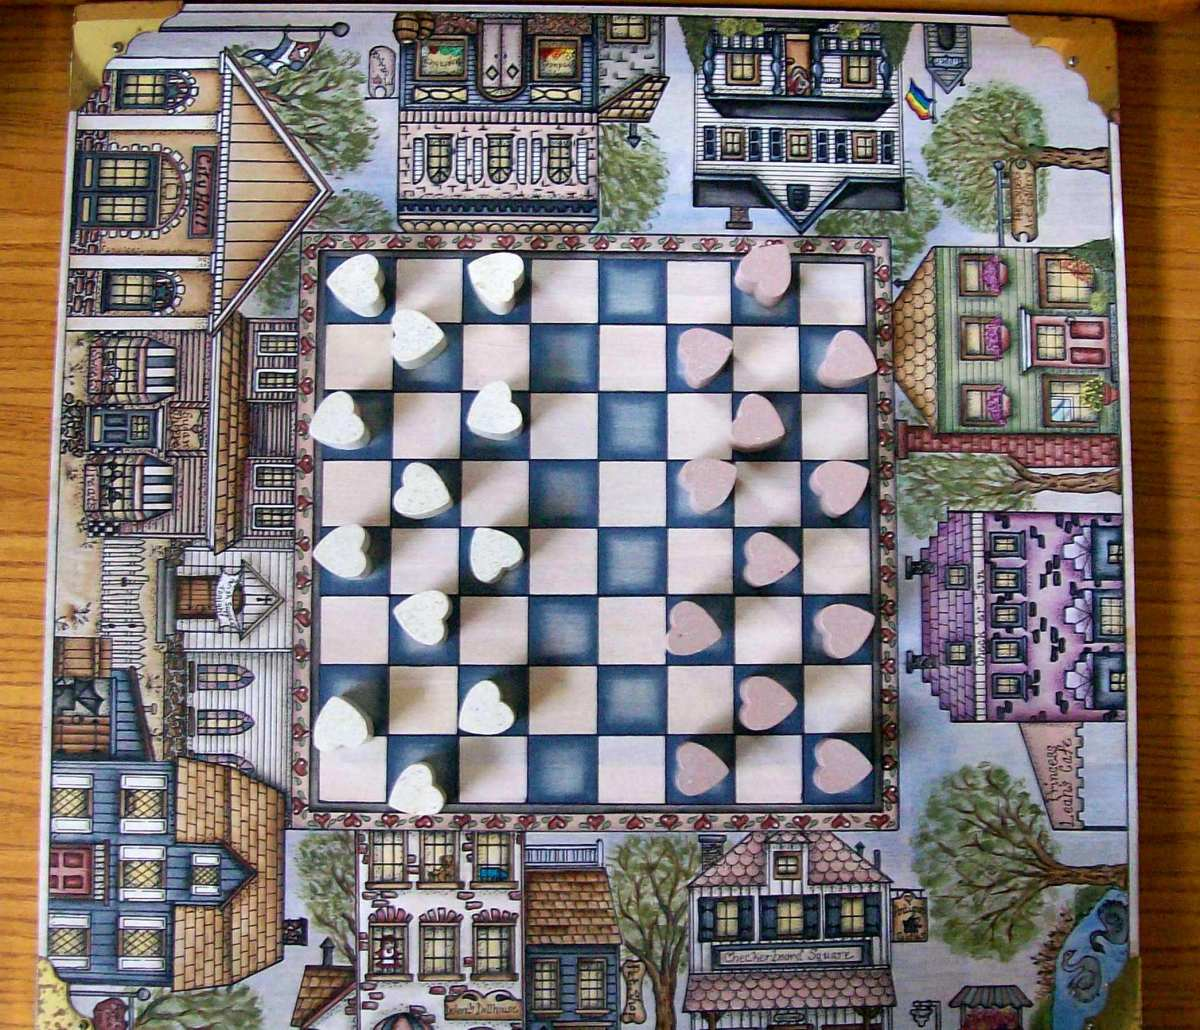 Another beautiful checker board with heart shaped movable pieces painted by Patty Sypek